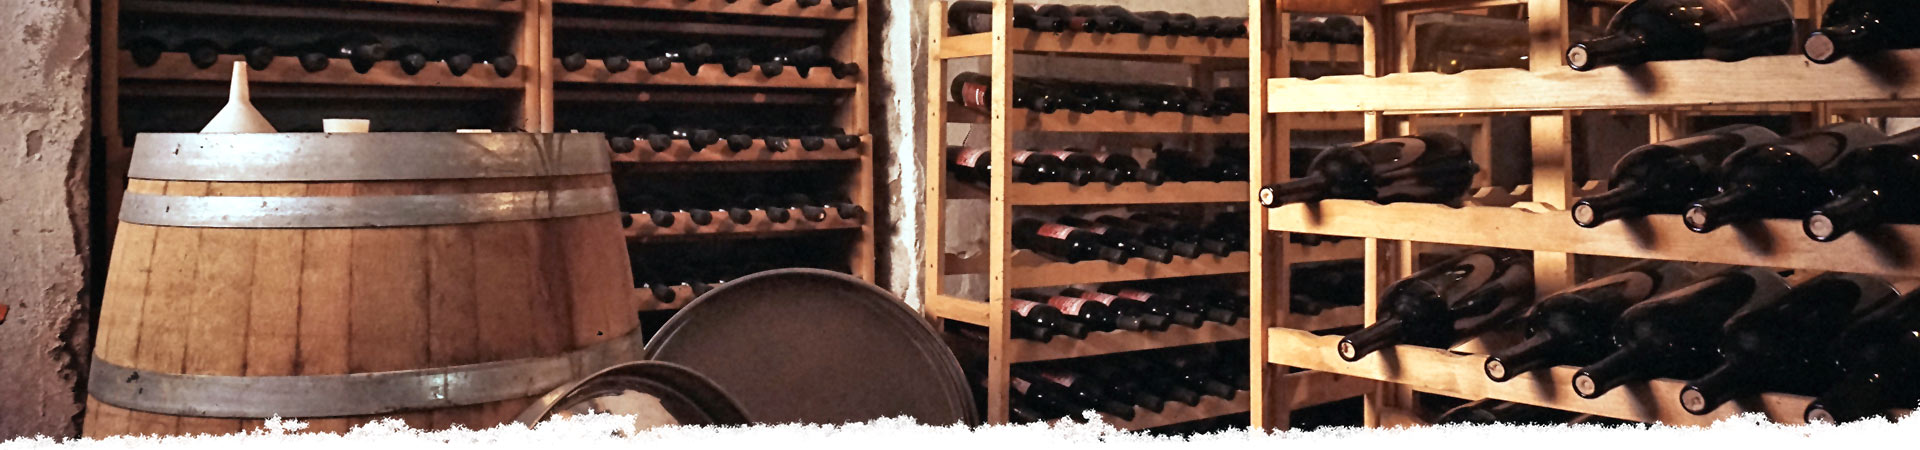 The Proper Way to Store Wine